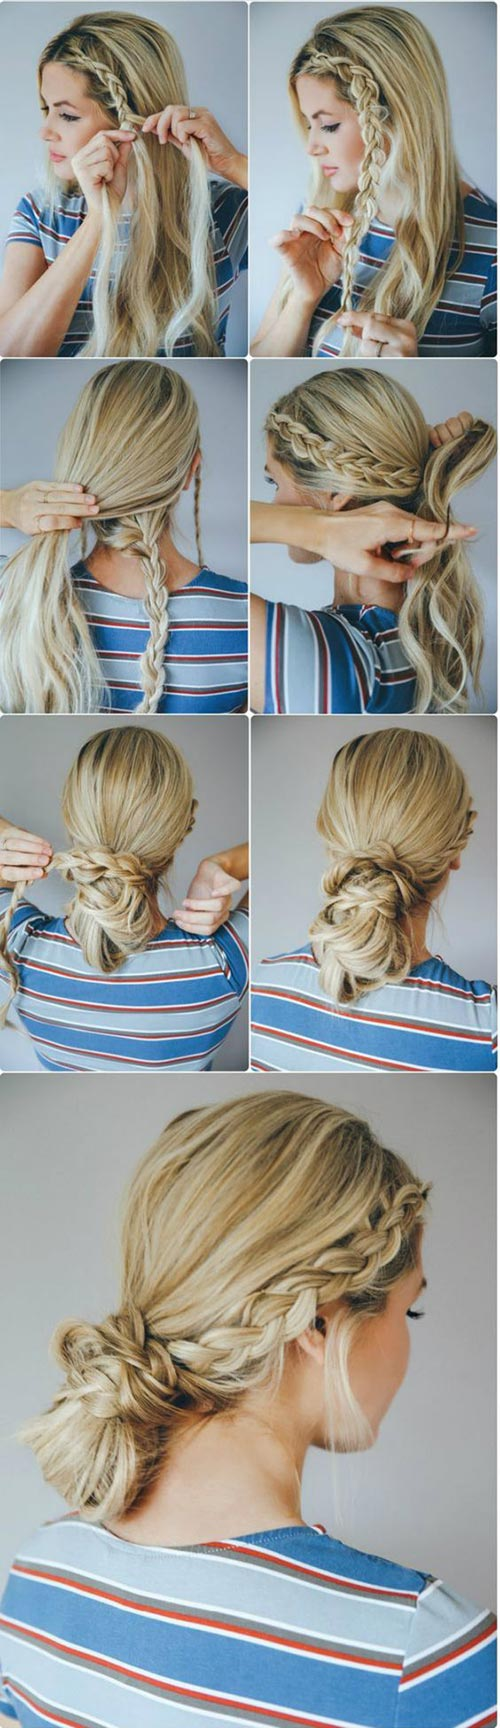 Messy twisted braid bun